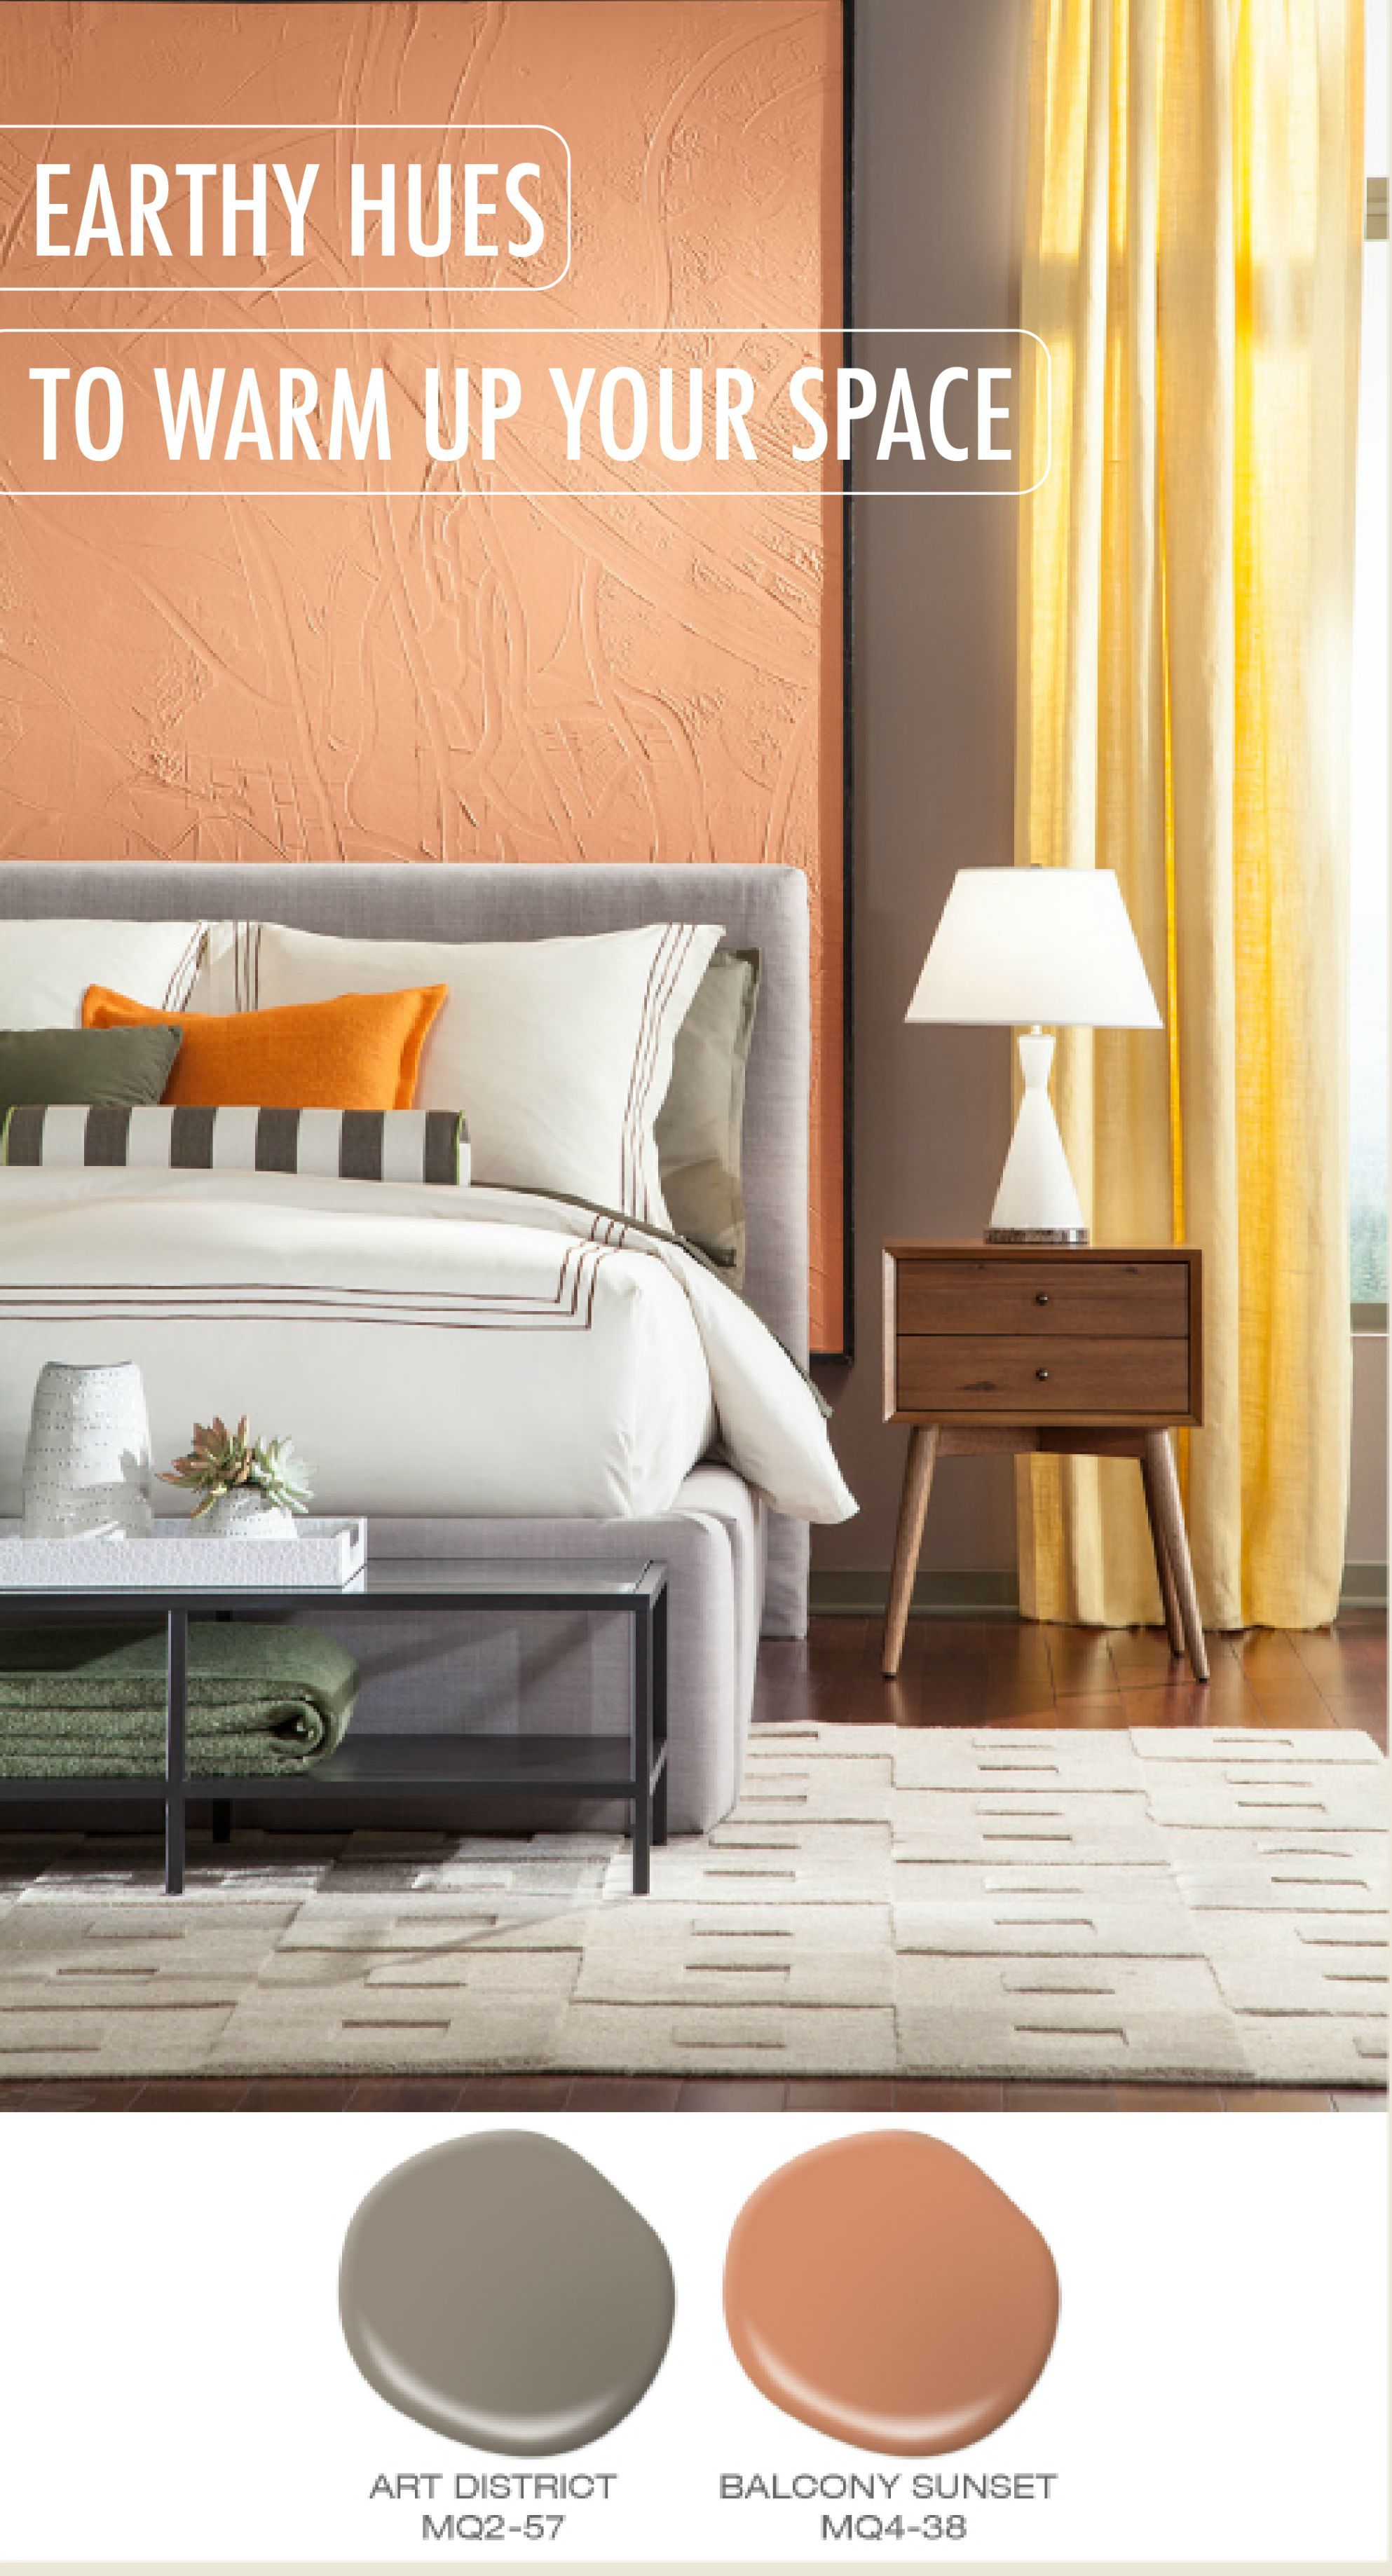 Relaxing Living Room Colors Try Using Earthy Hues Like Art District And Balcony Sunset To Warm